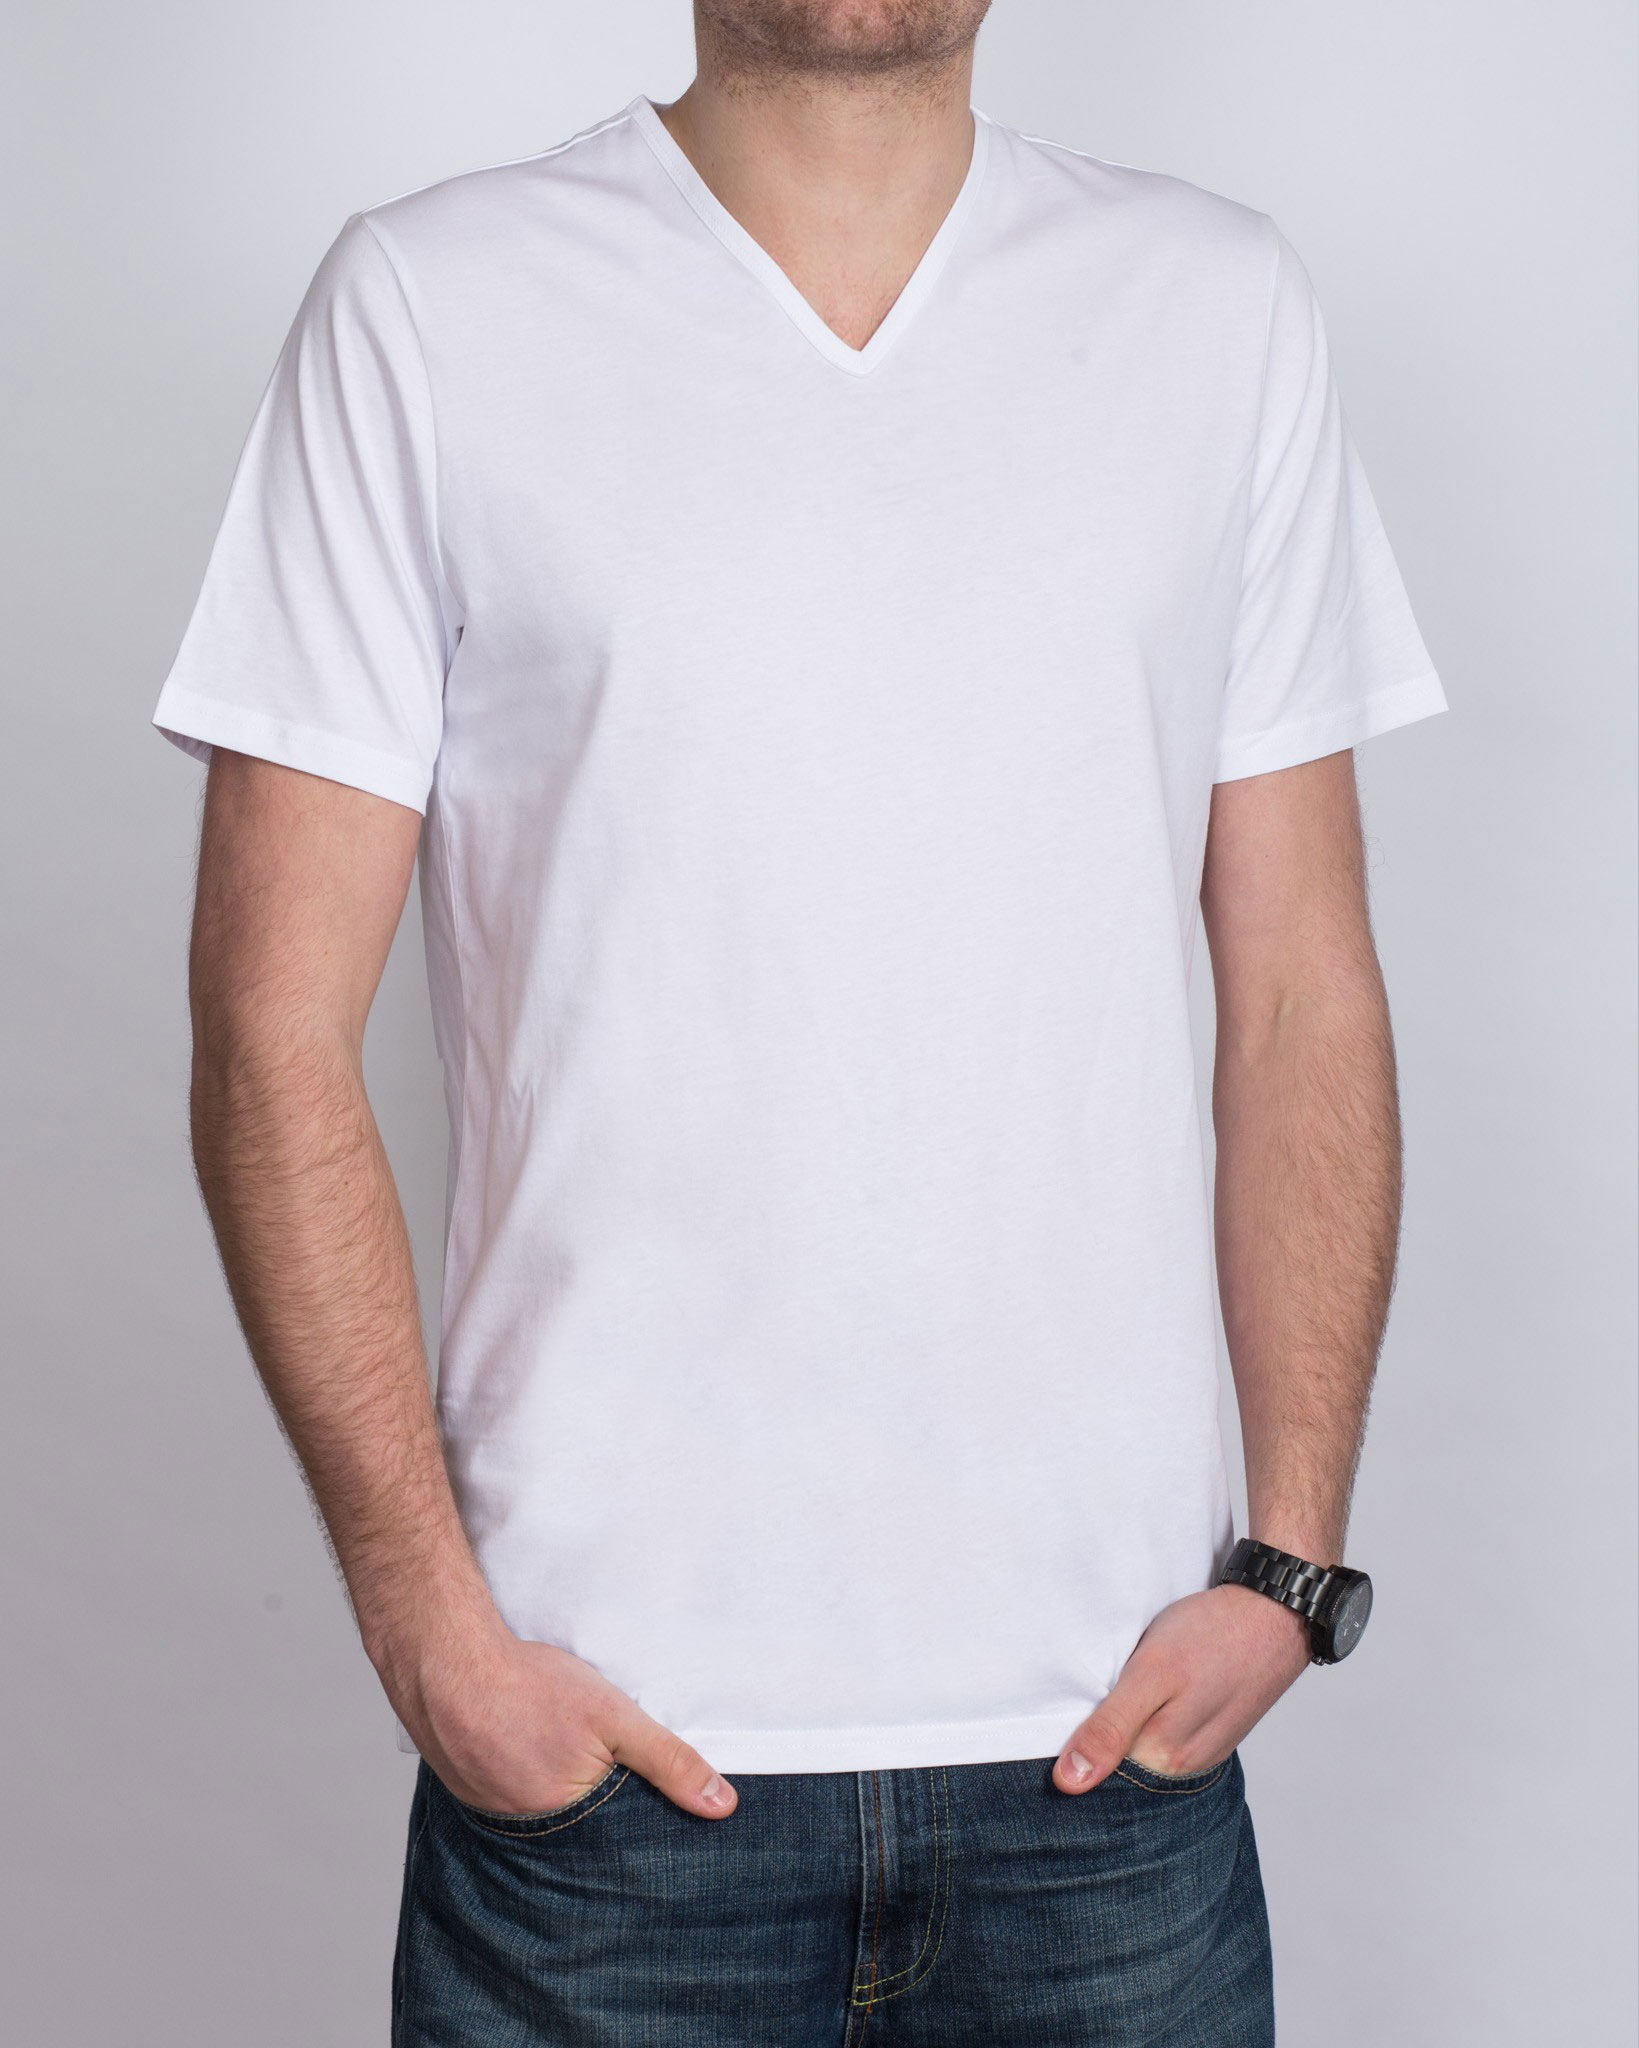 Girav Tall V-Neck (white) Twin Pack